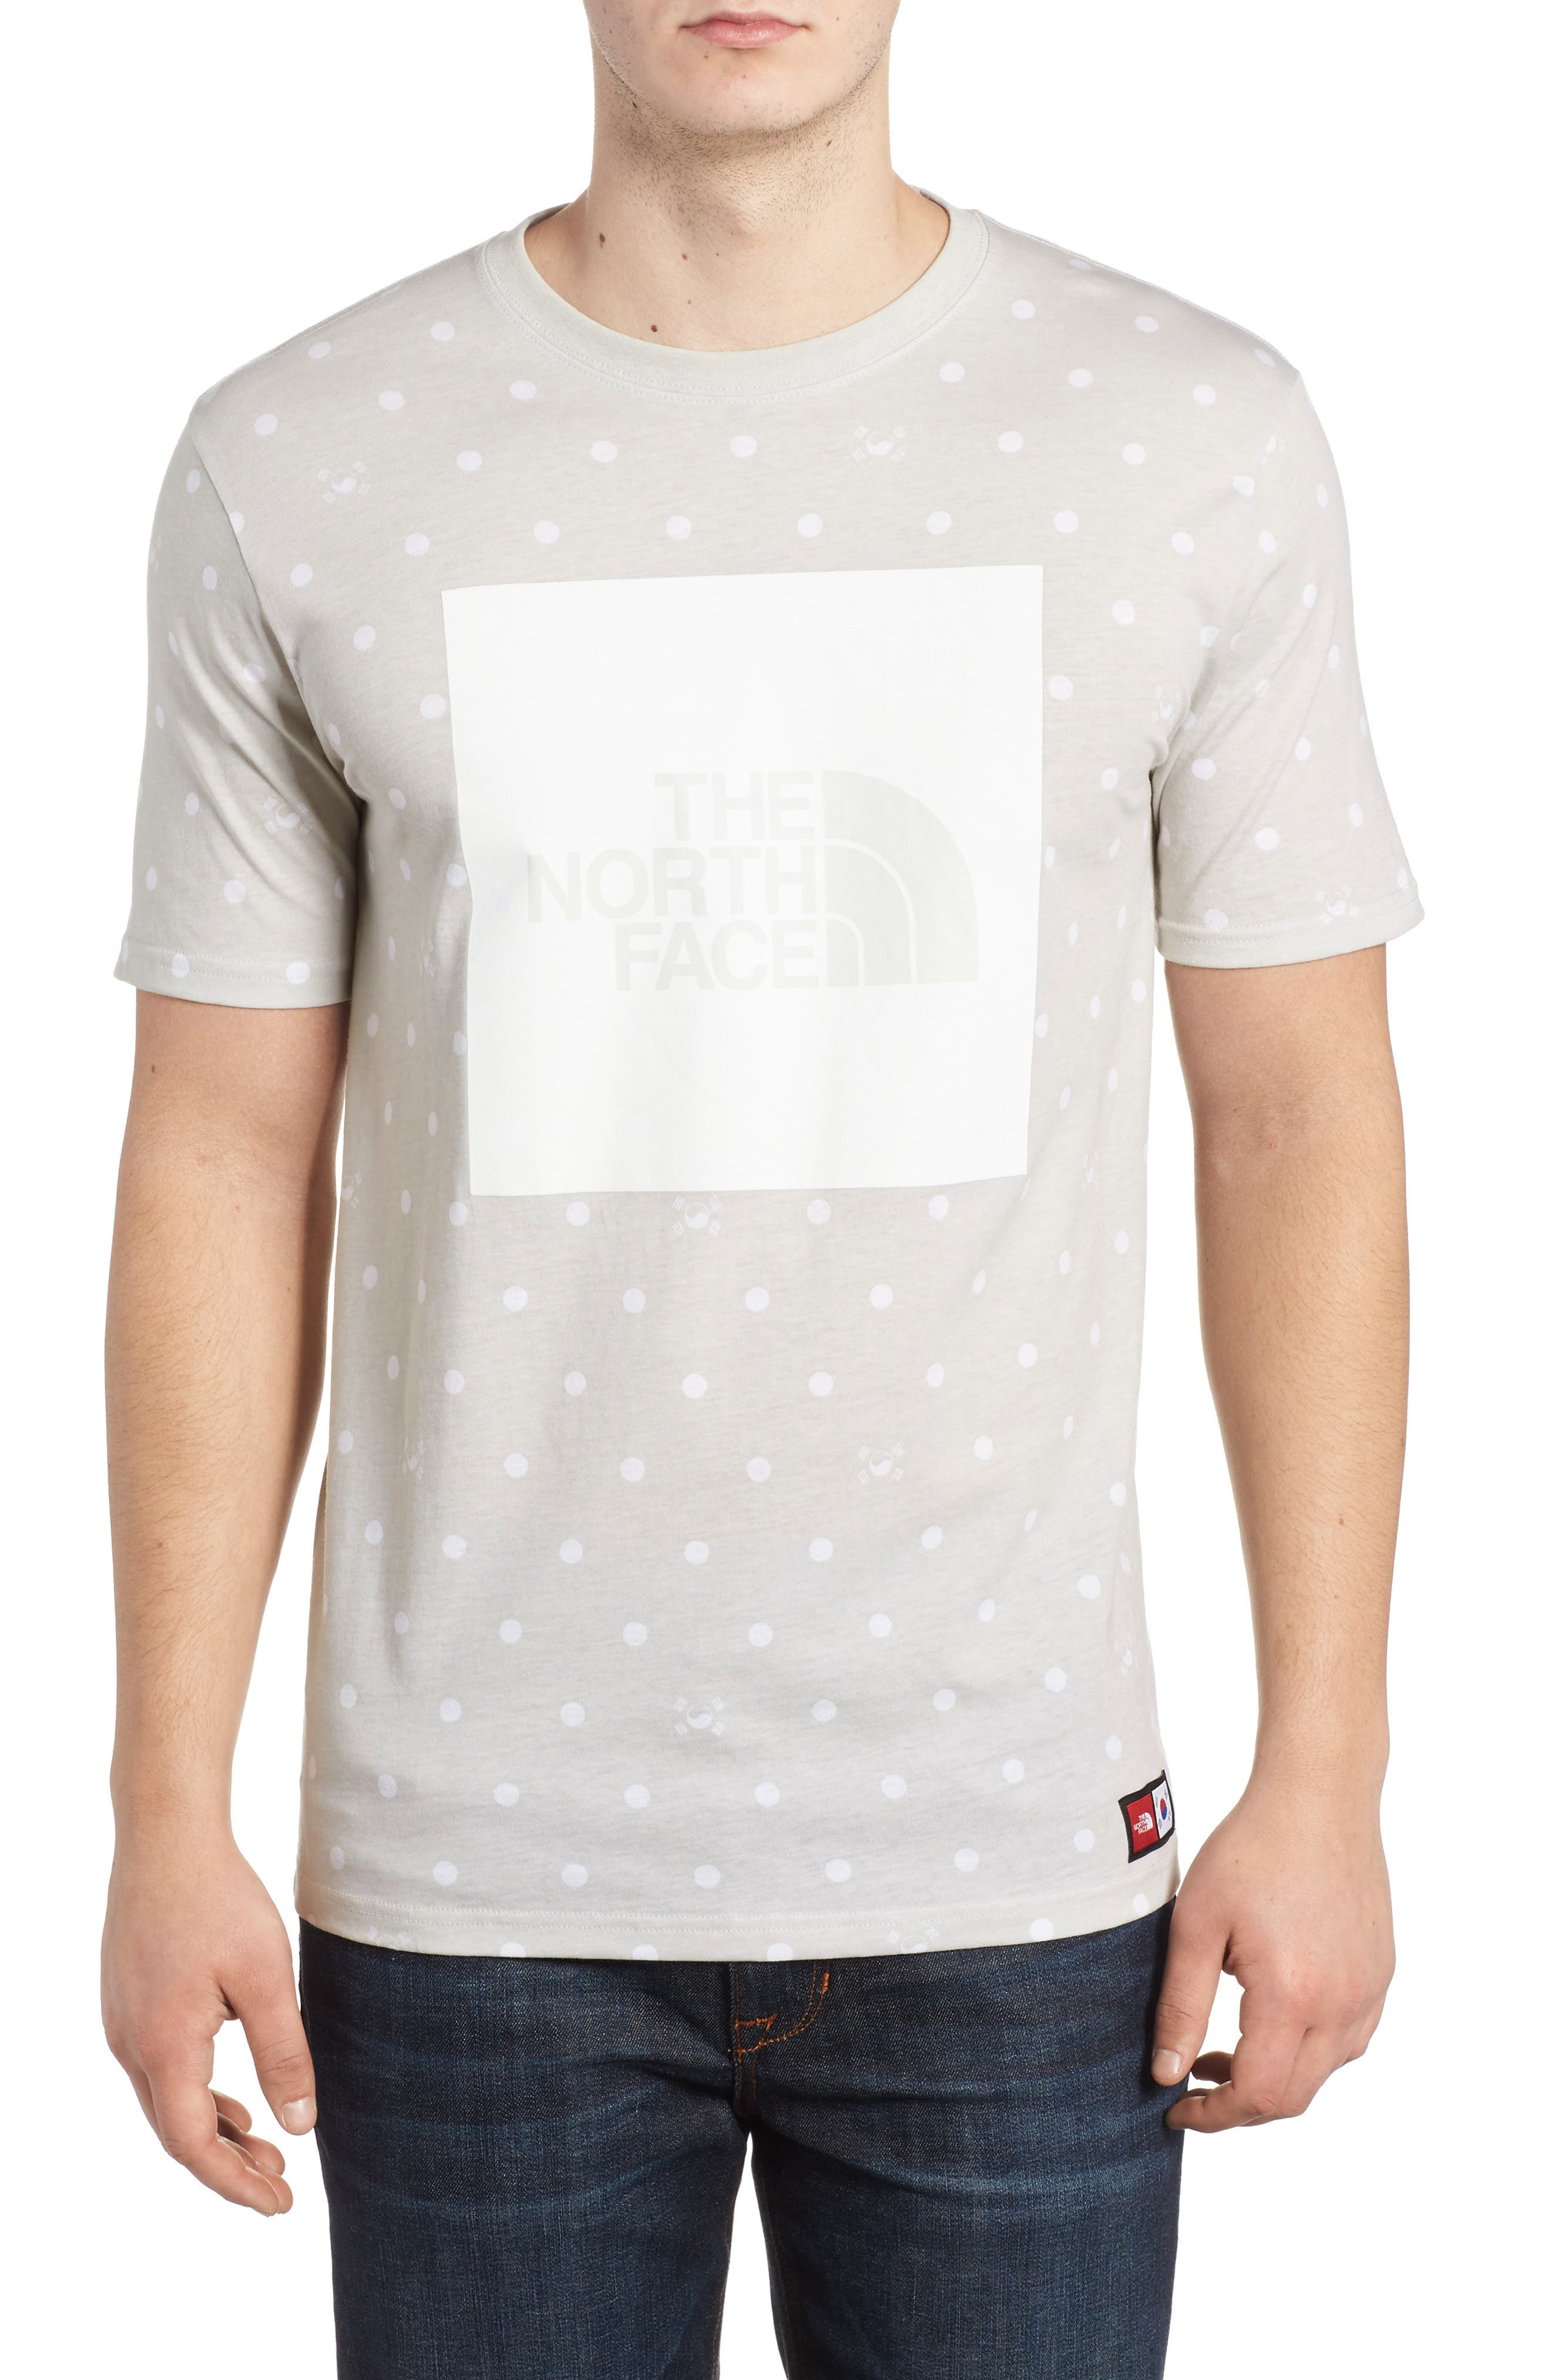 International Collection Star Print T-Shirt,                         Main,                         color, 030